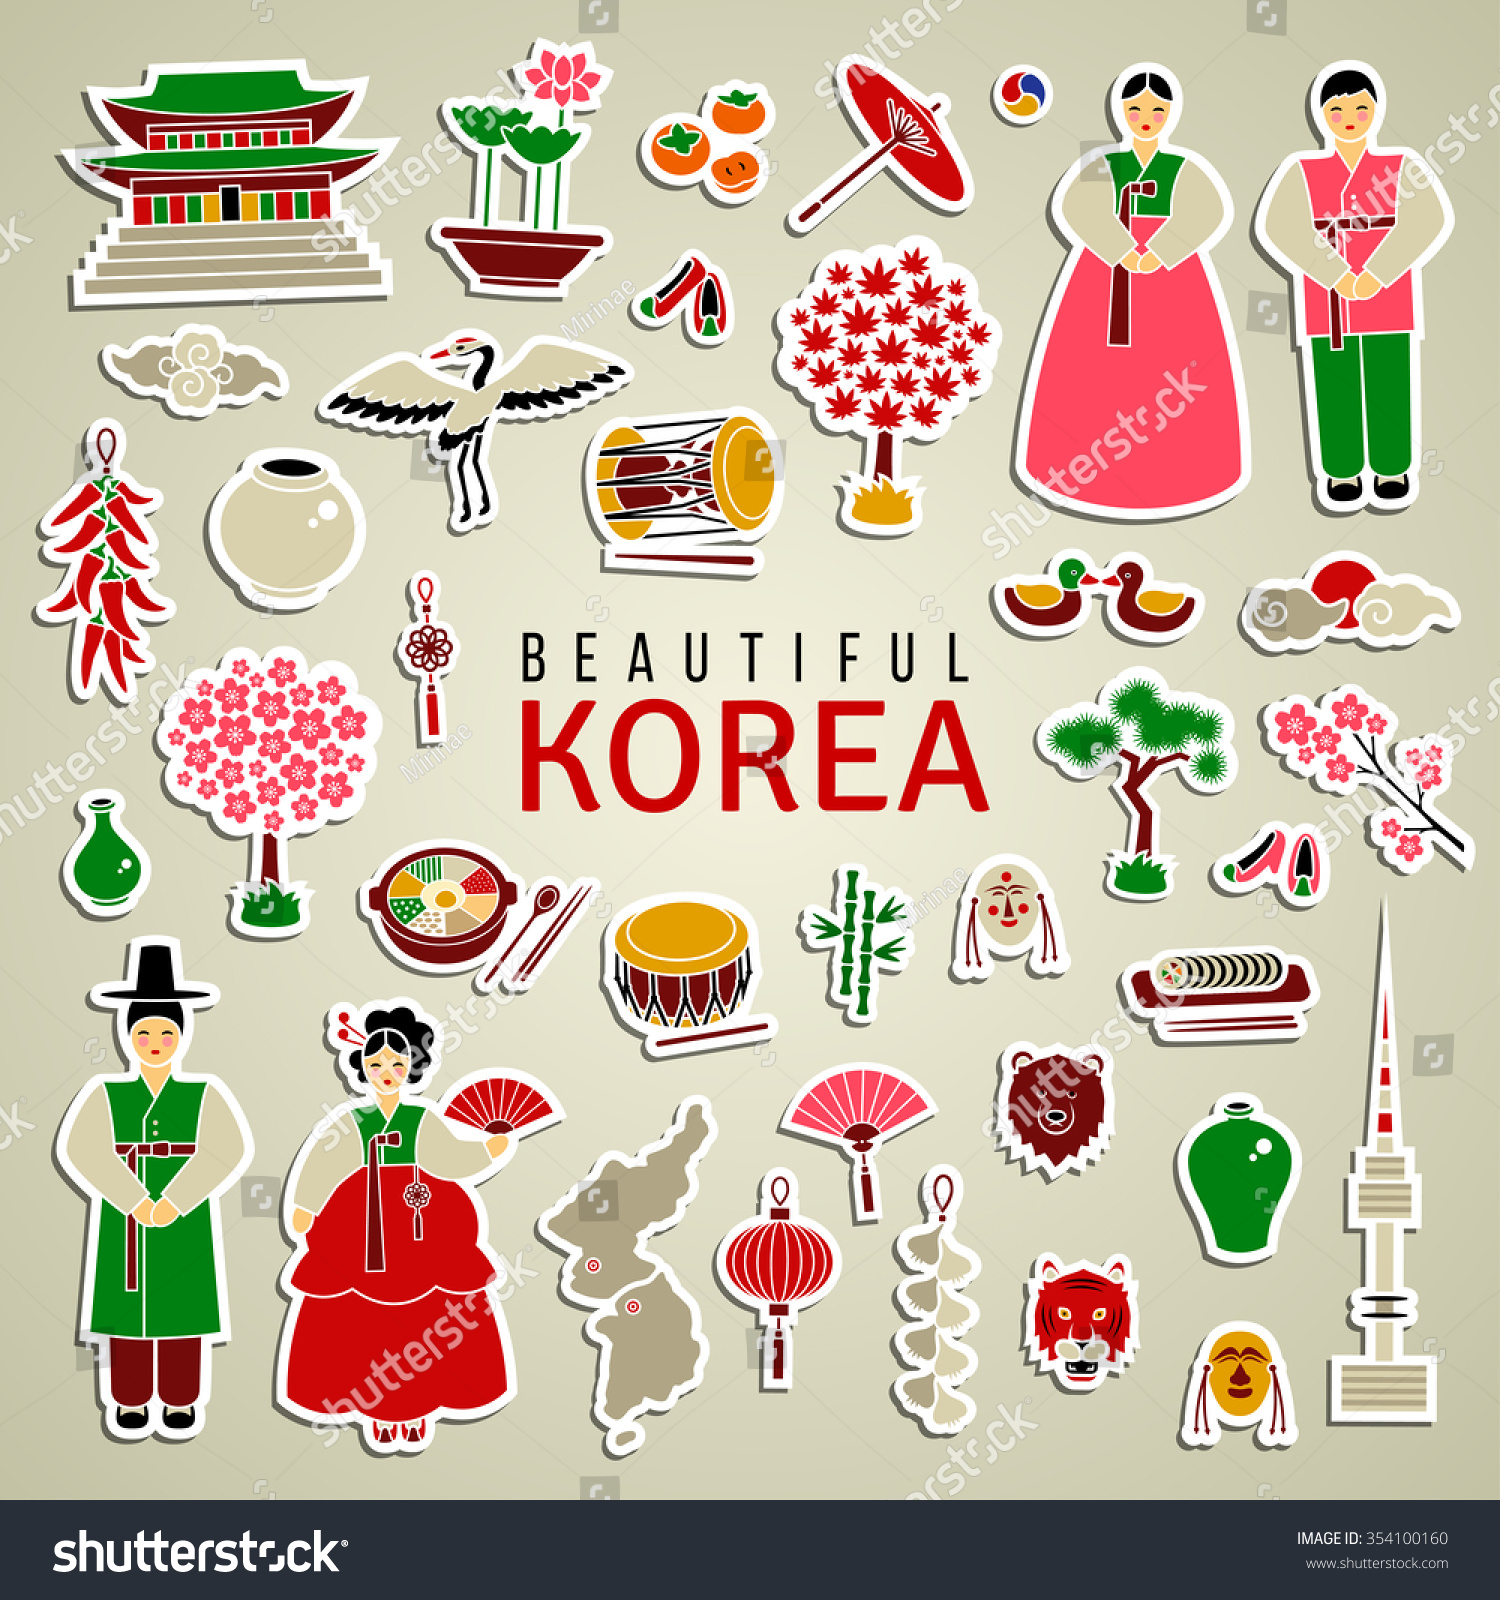 Korean Cultural Symbols Set Sticker Type Vector De Stock354100160